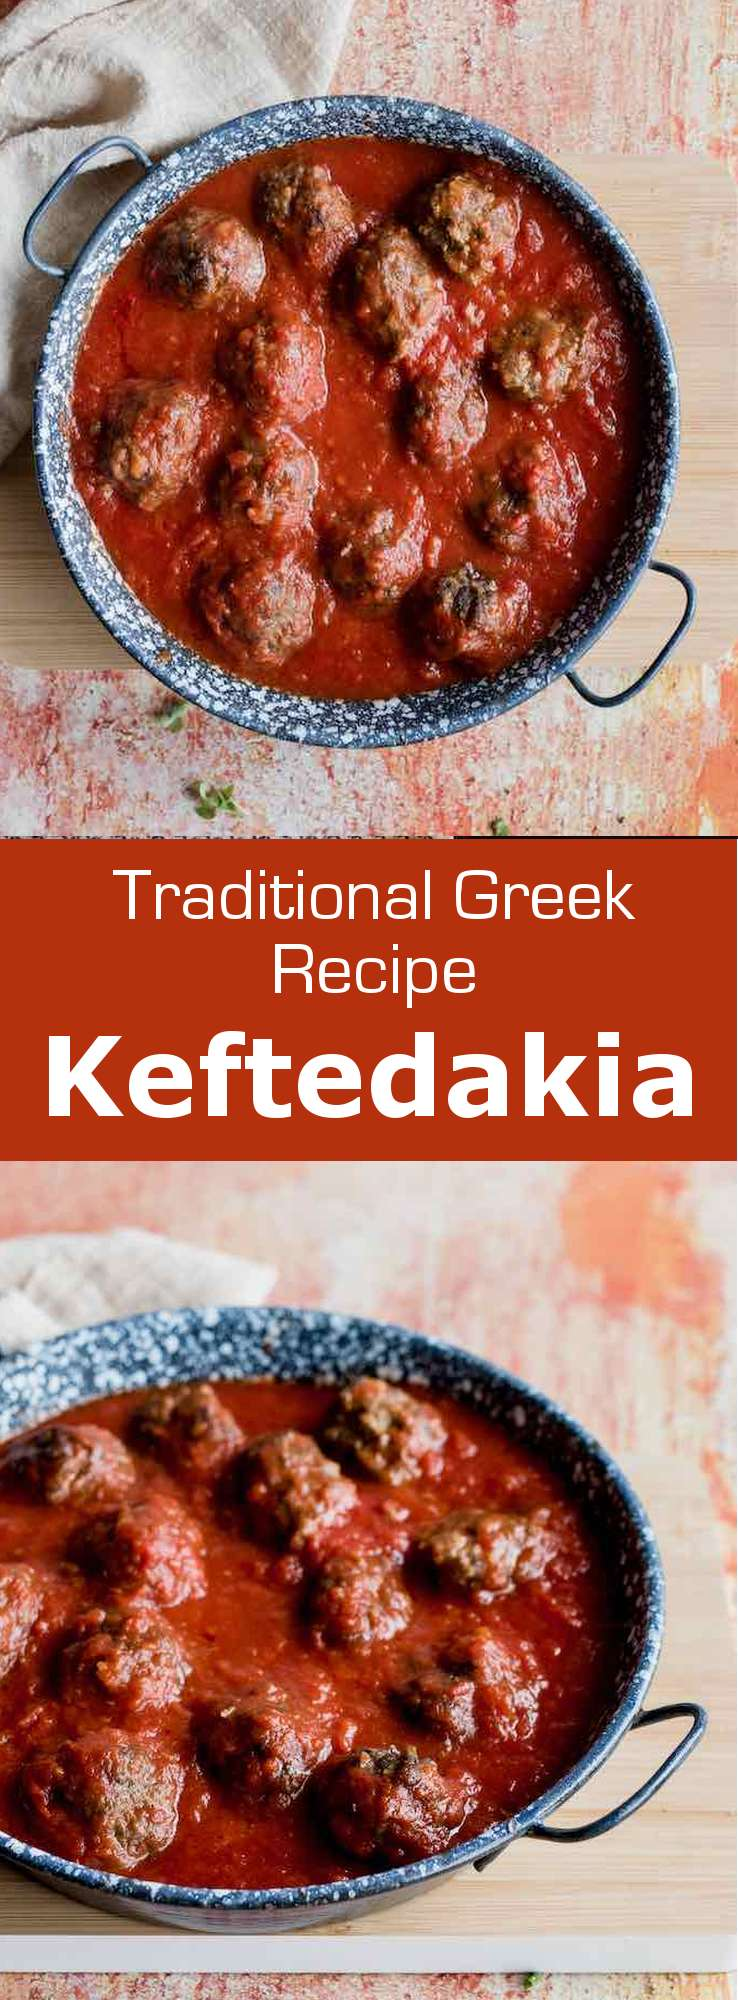 Keftedakia (κεφτεδακια) are deliciously spiced traditional Greek small meatballs, that are fried and simmered in a tomato sauce. #Greece #GreekCuisine #GreekFood #GreekRecipe #MediterraneanCuisine #WorldCuisine #196flavors